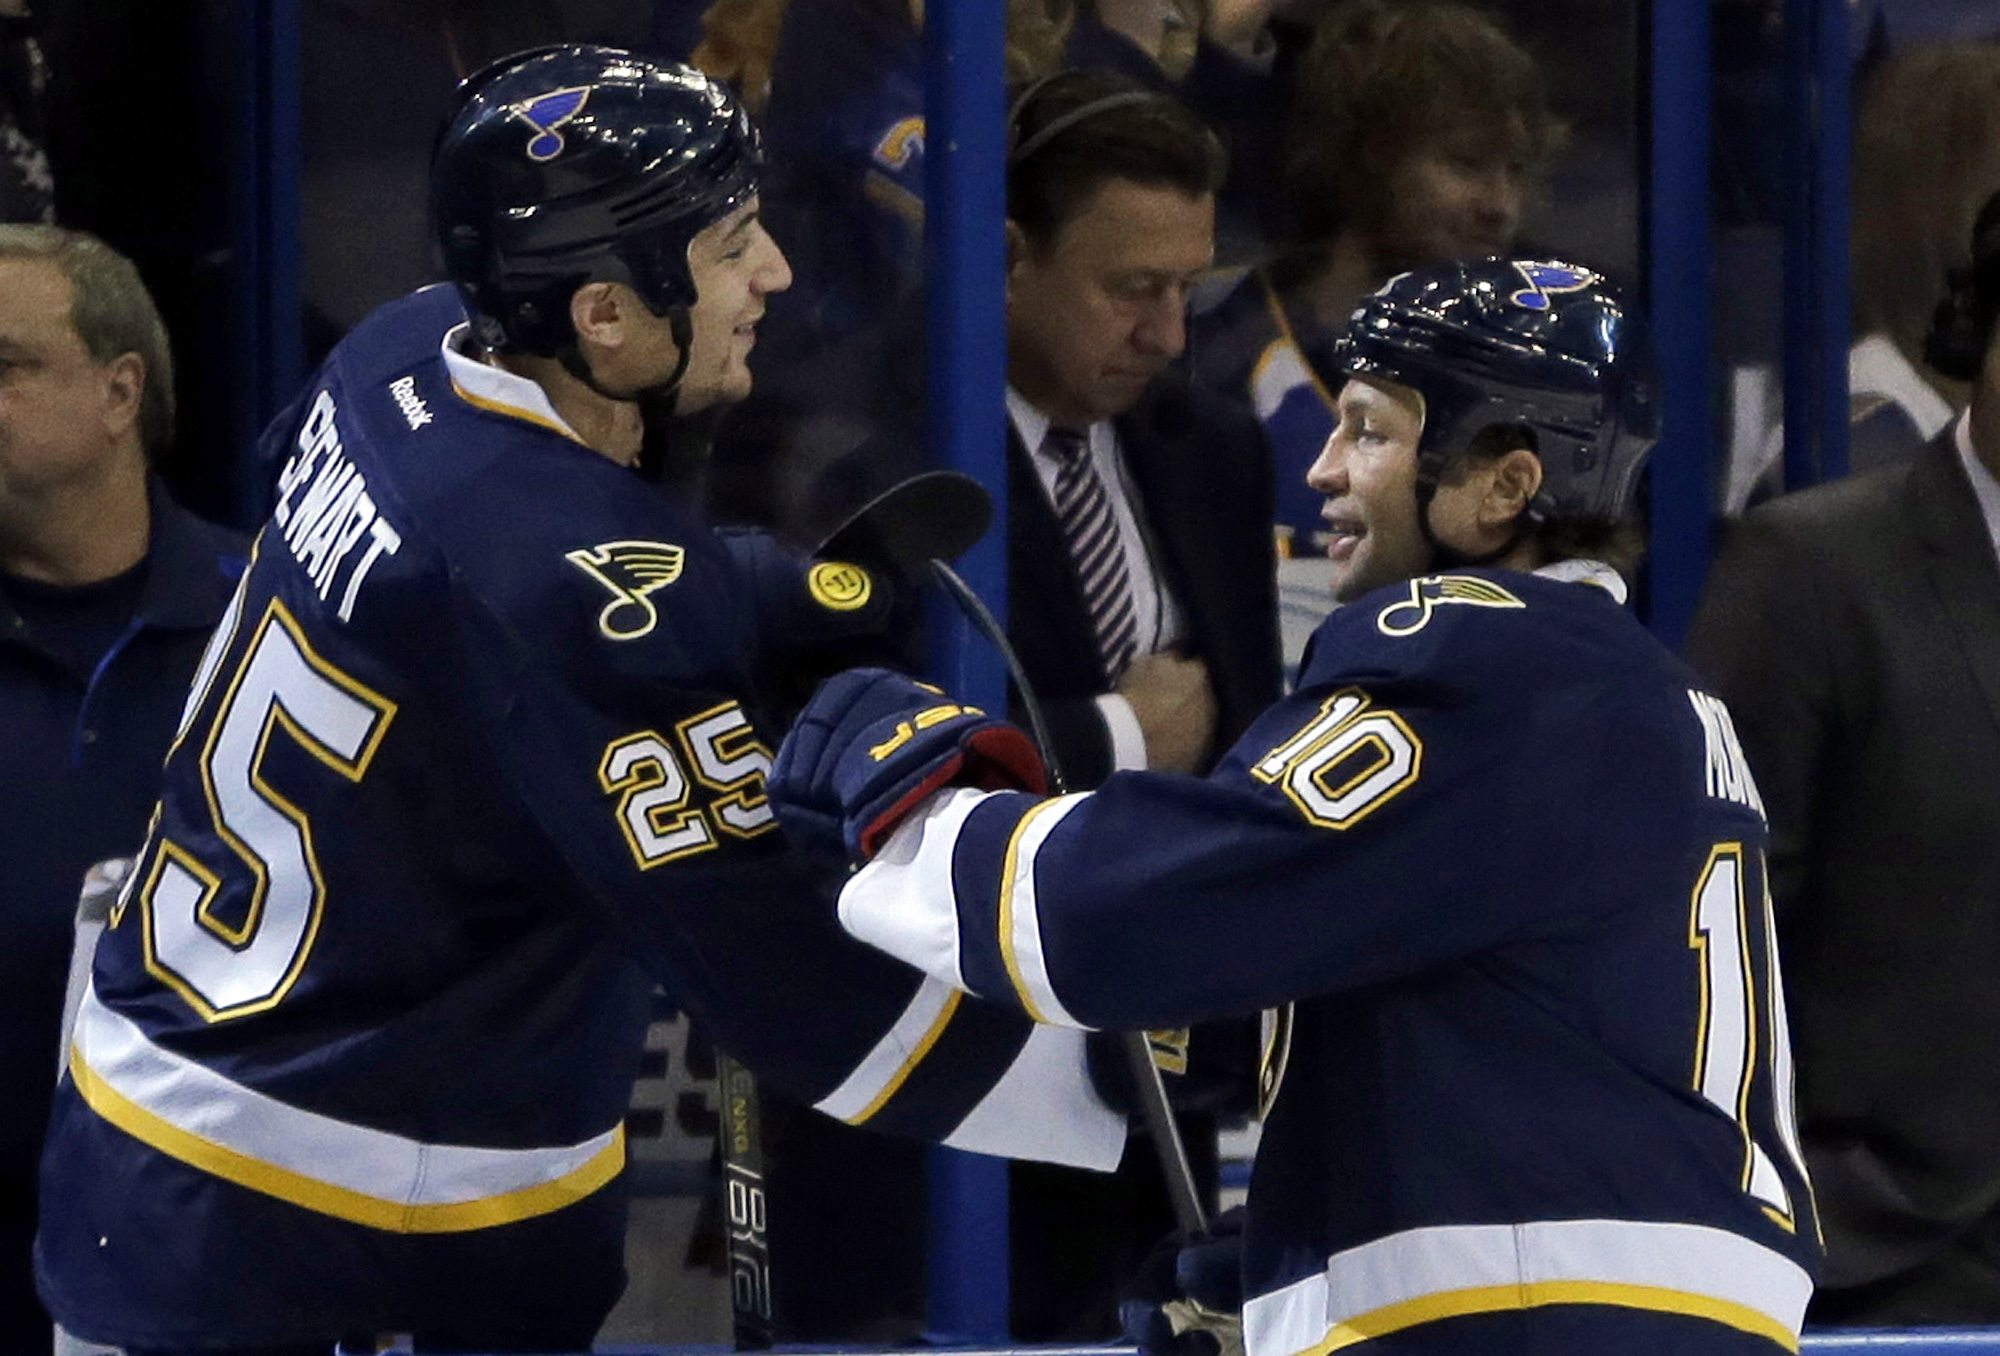 St. Louis Blues' Brenden Morrow, right, is congratulated by Chris Stewart after scoring during the first period of an NHL hockey game against the Winnipeg Jets Saturday, Feb. 8, 2014, in St. Louis